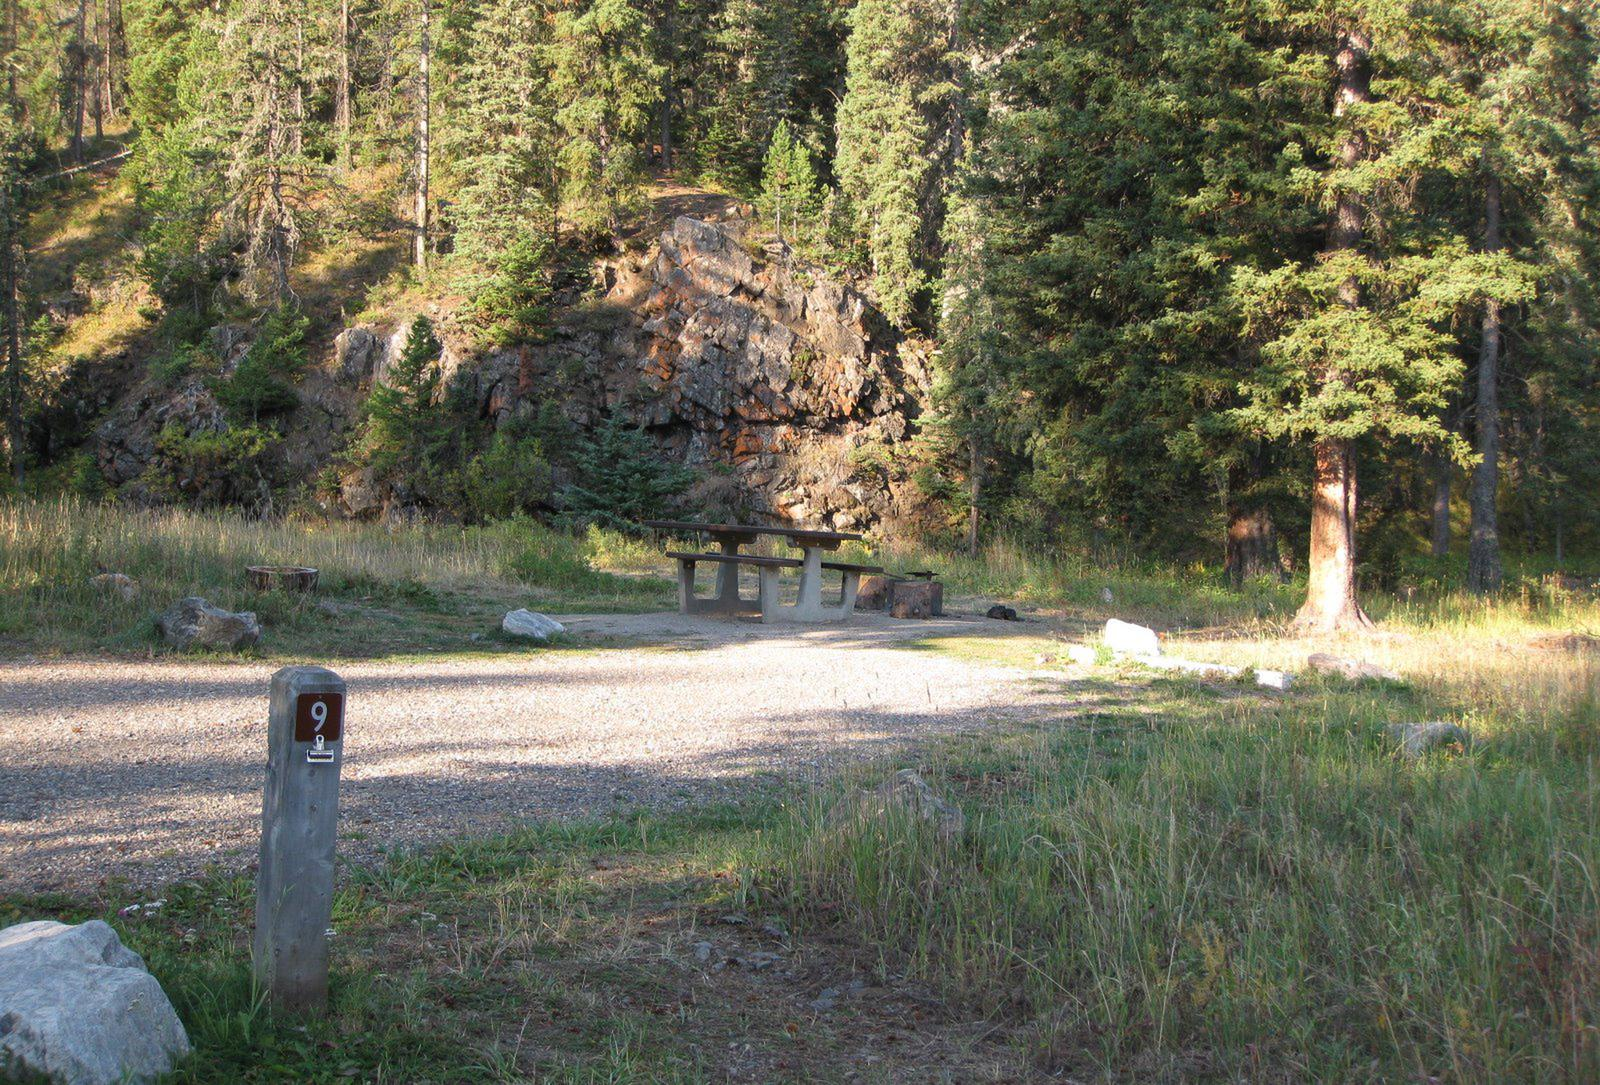 Site 9, campsite surrounded by pine trees, picnic table & fire ringSite 9